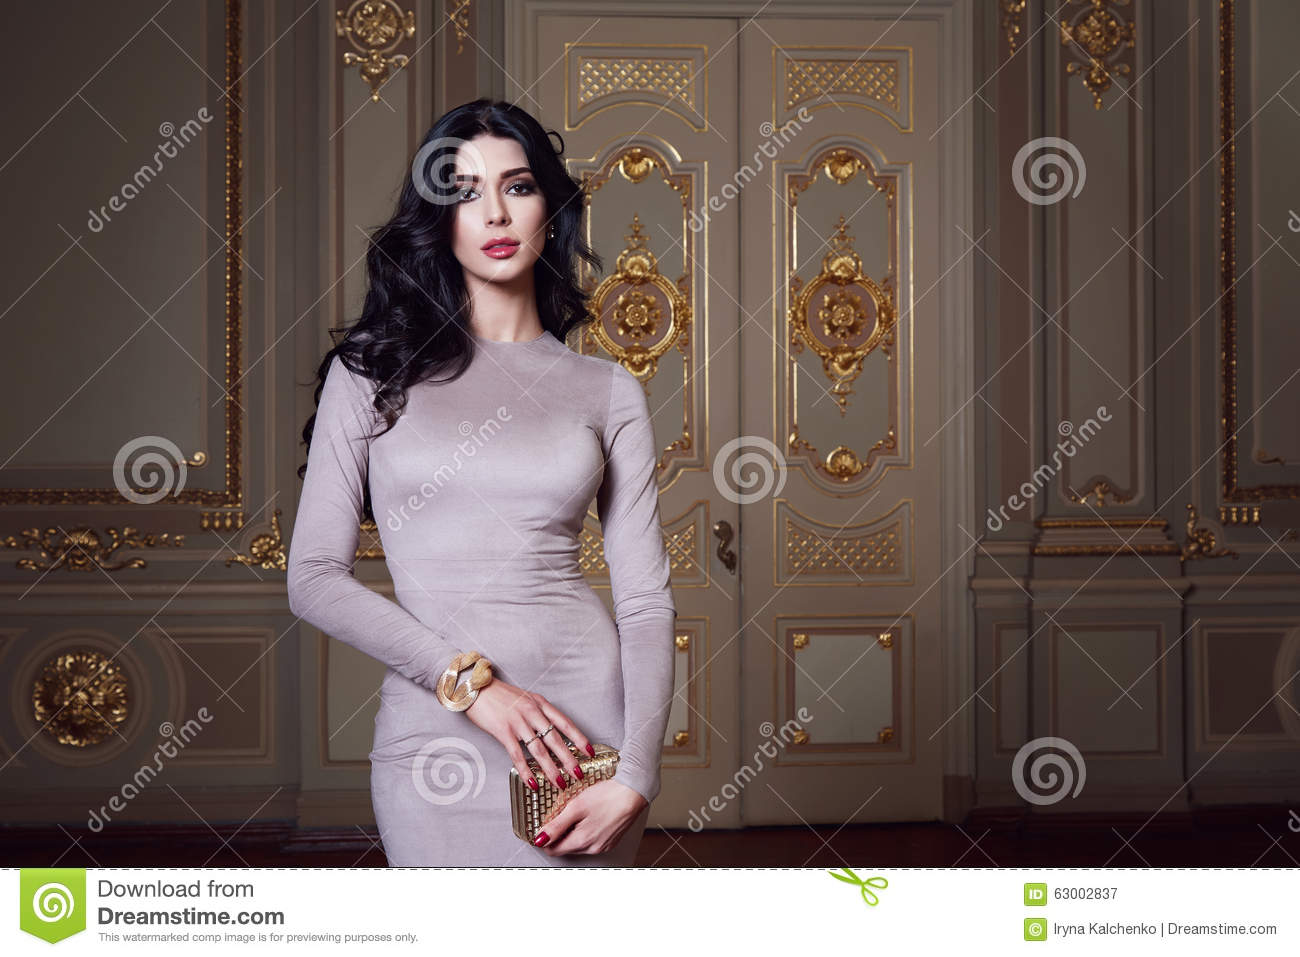 Download Beautiful Woman In Elegant Dress Fashionable Autumn Collection Of Spring Long Brunette Hair Makeup Tanned Slim Body Figure Ac Stock Image - Image of long, bags: 63002837